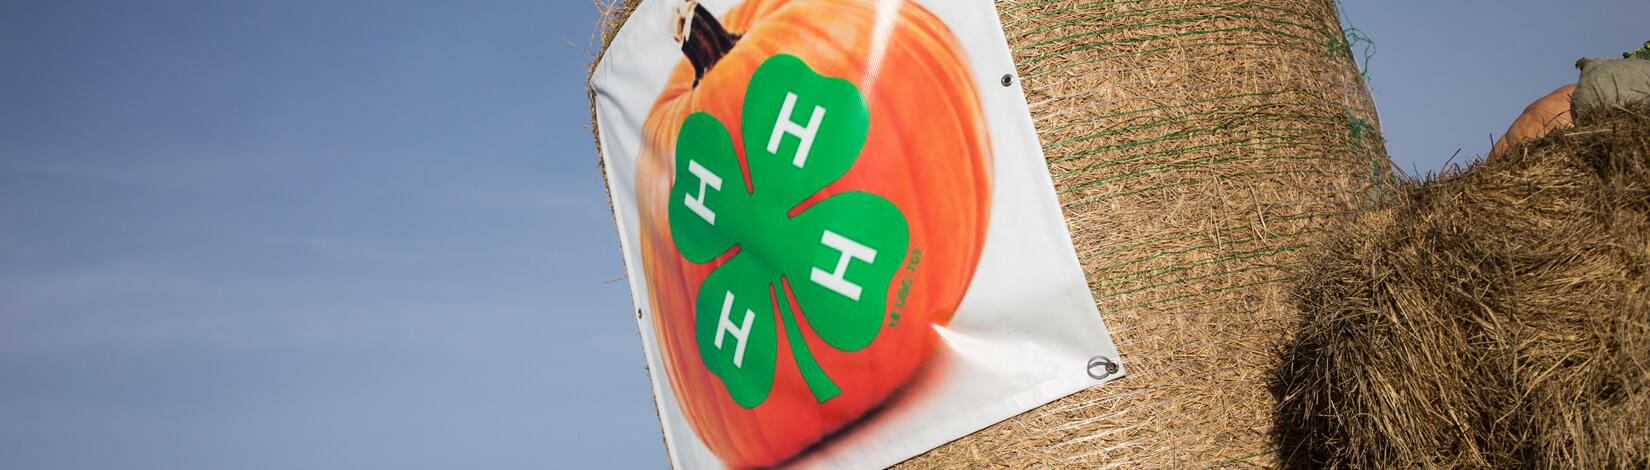 4-H logo on pumpkin